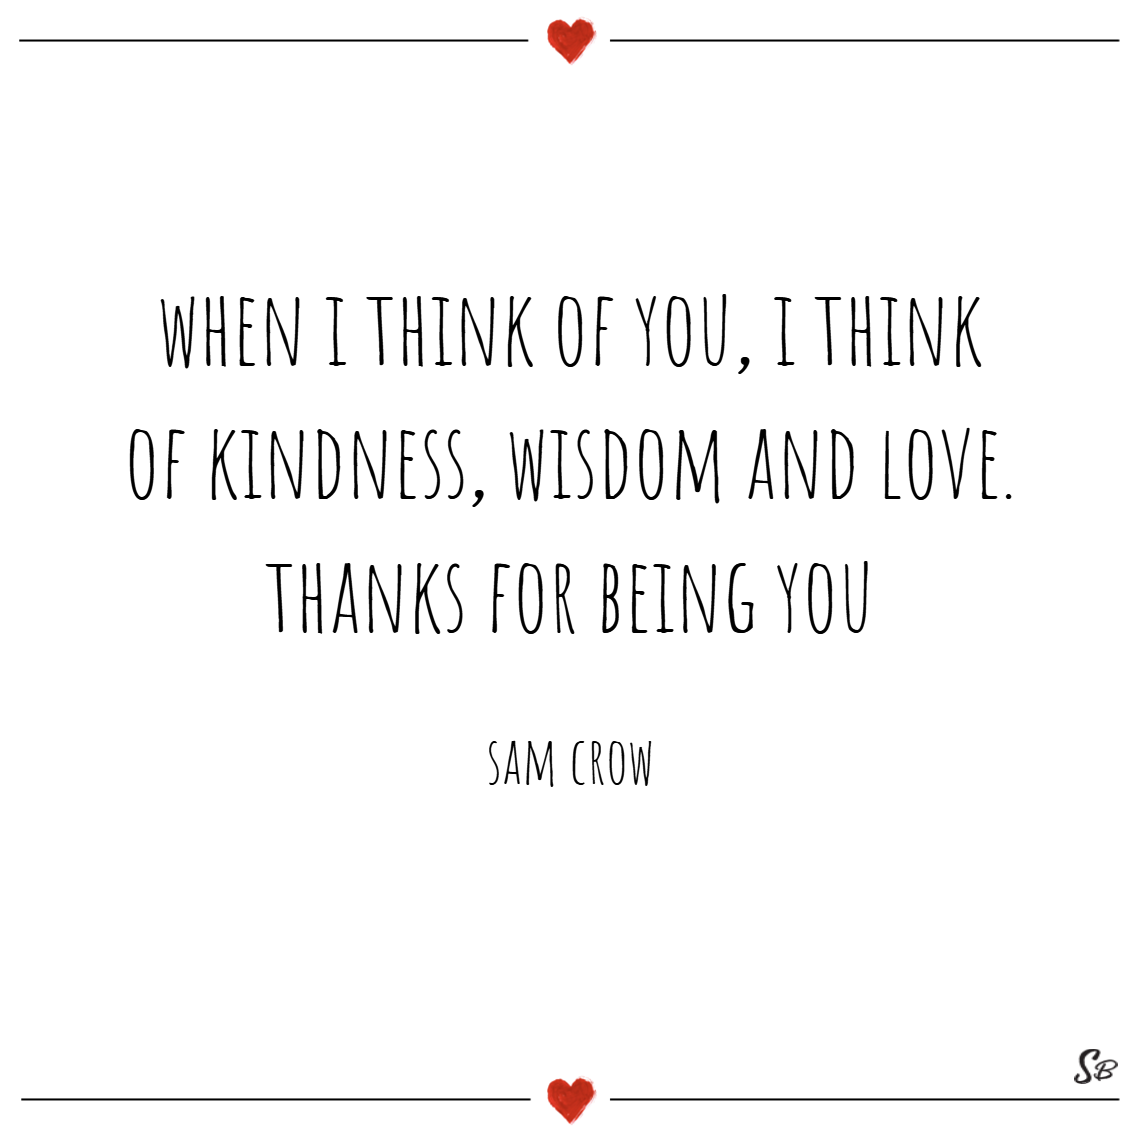 When i think of you, i think of kindness, wisdom and love. thanks for being you. – sam crow